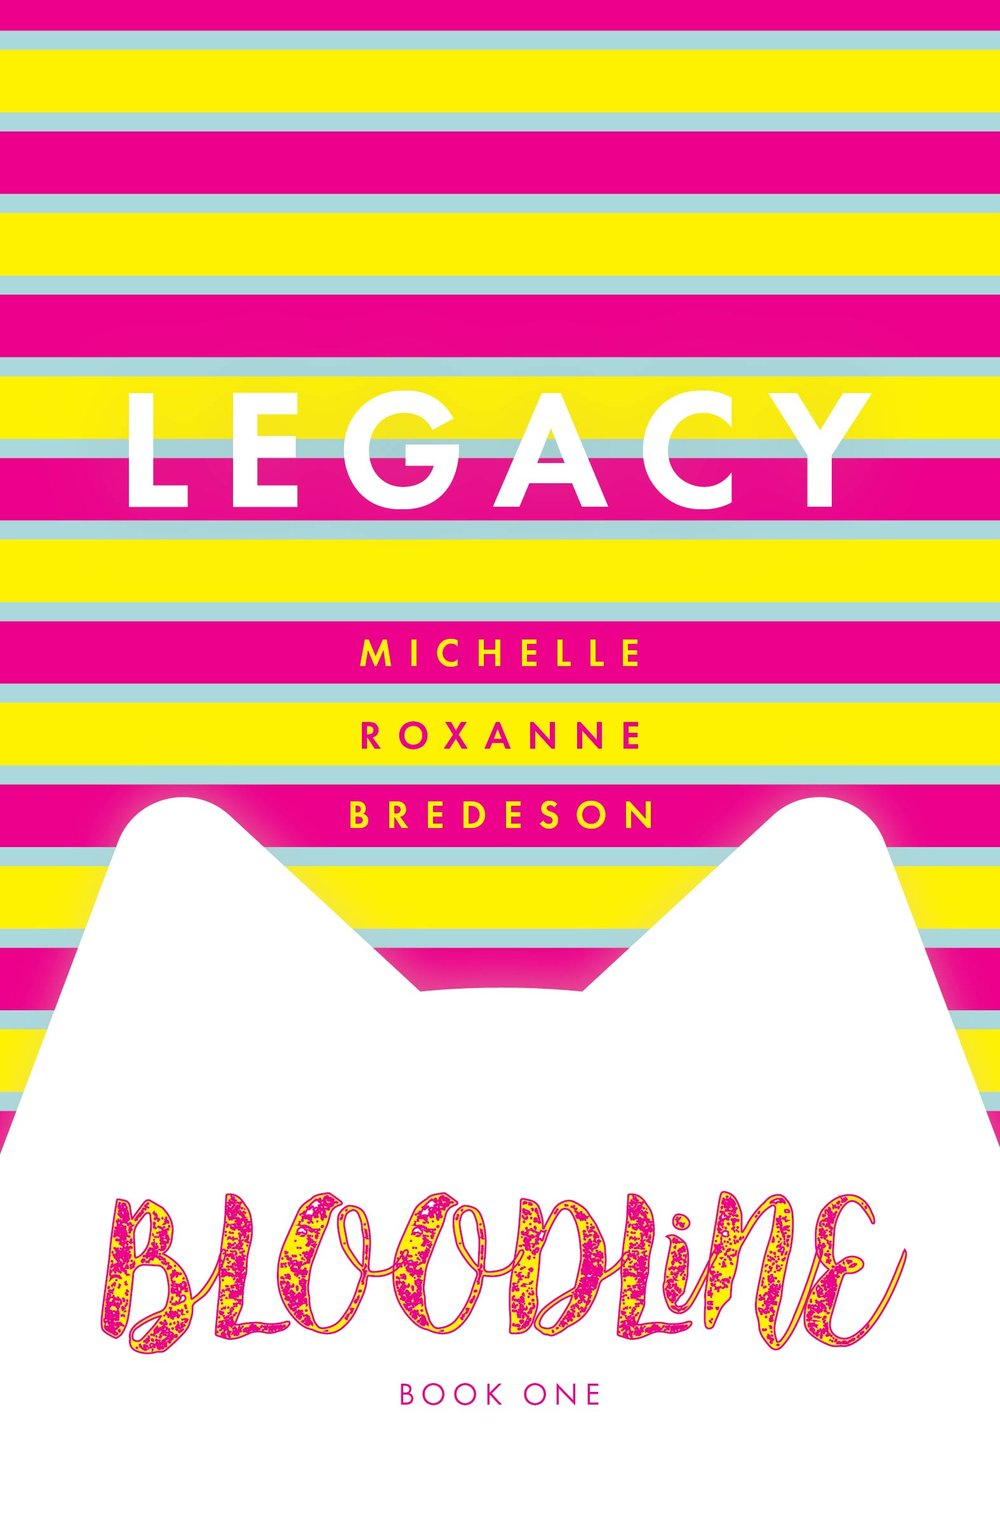 LEGACY - book cover only - version 3-01.jpg